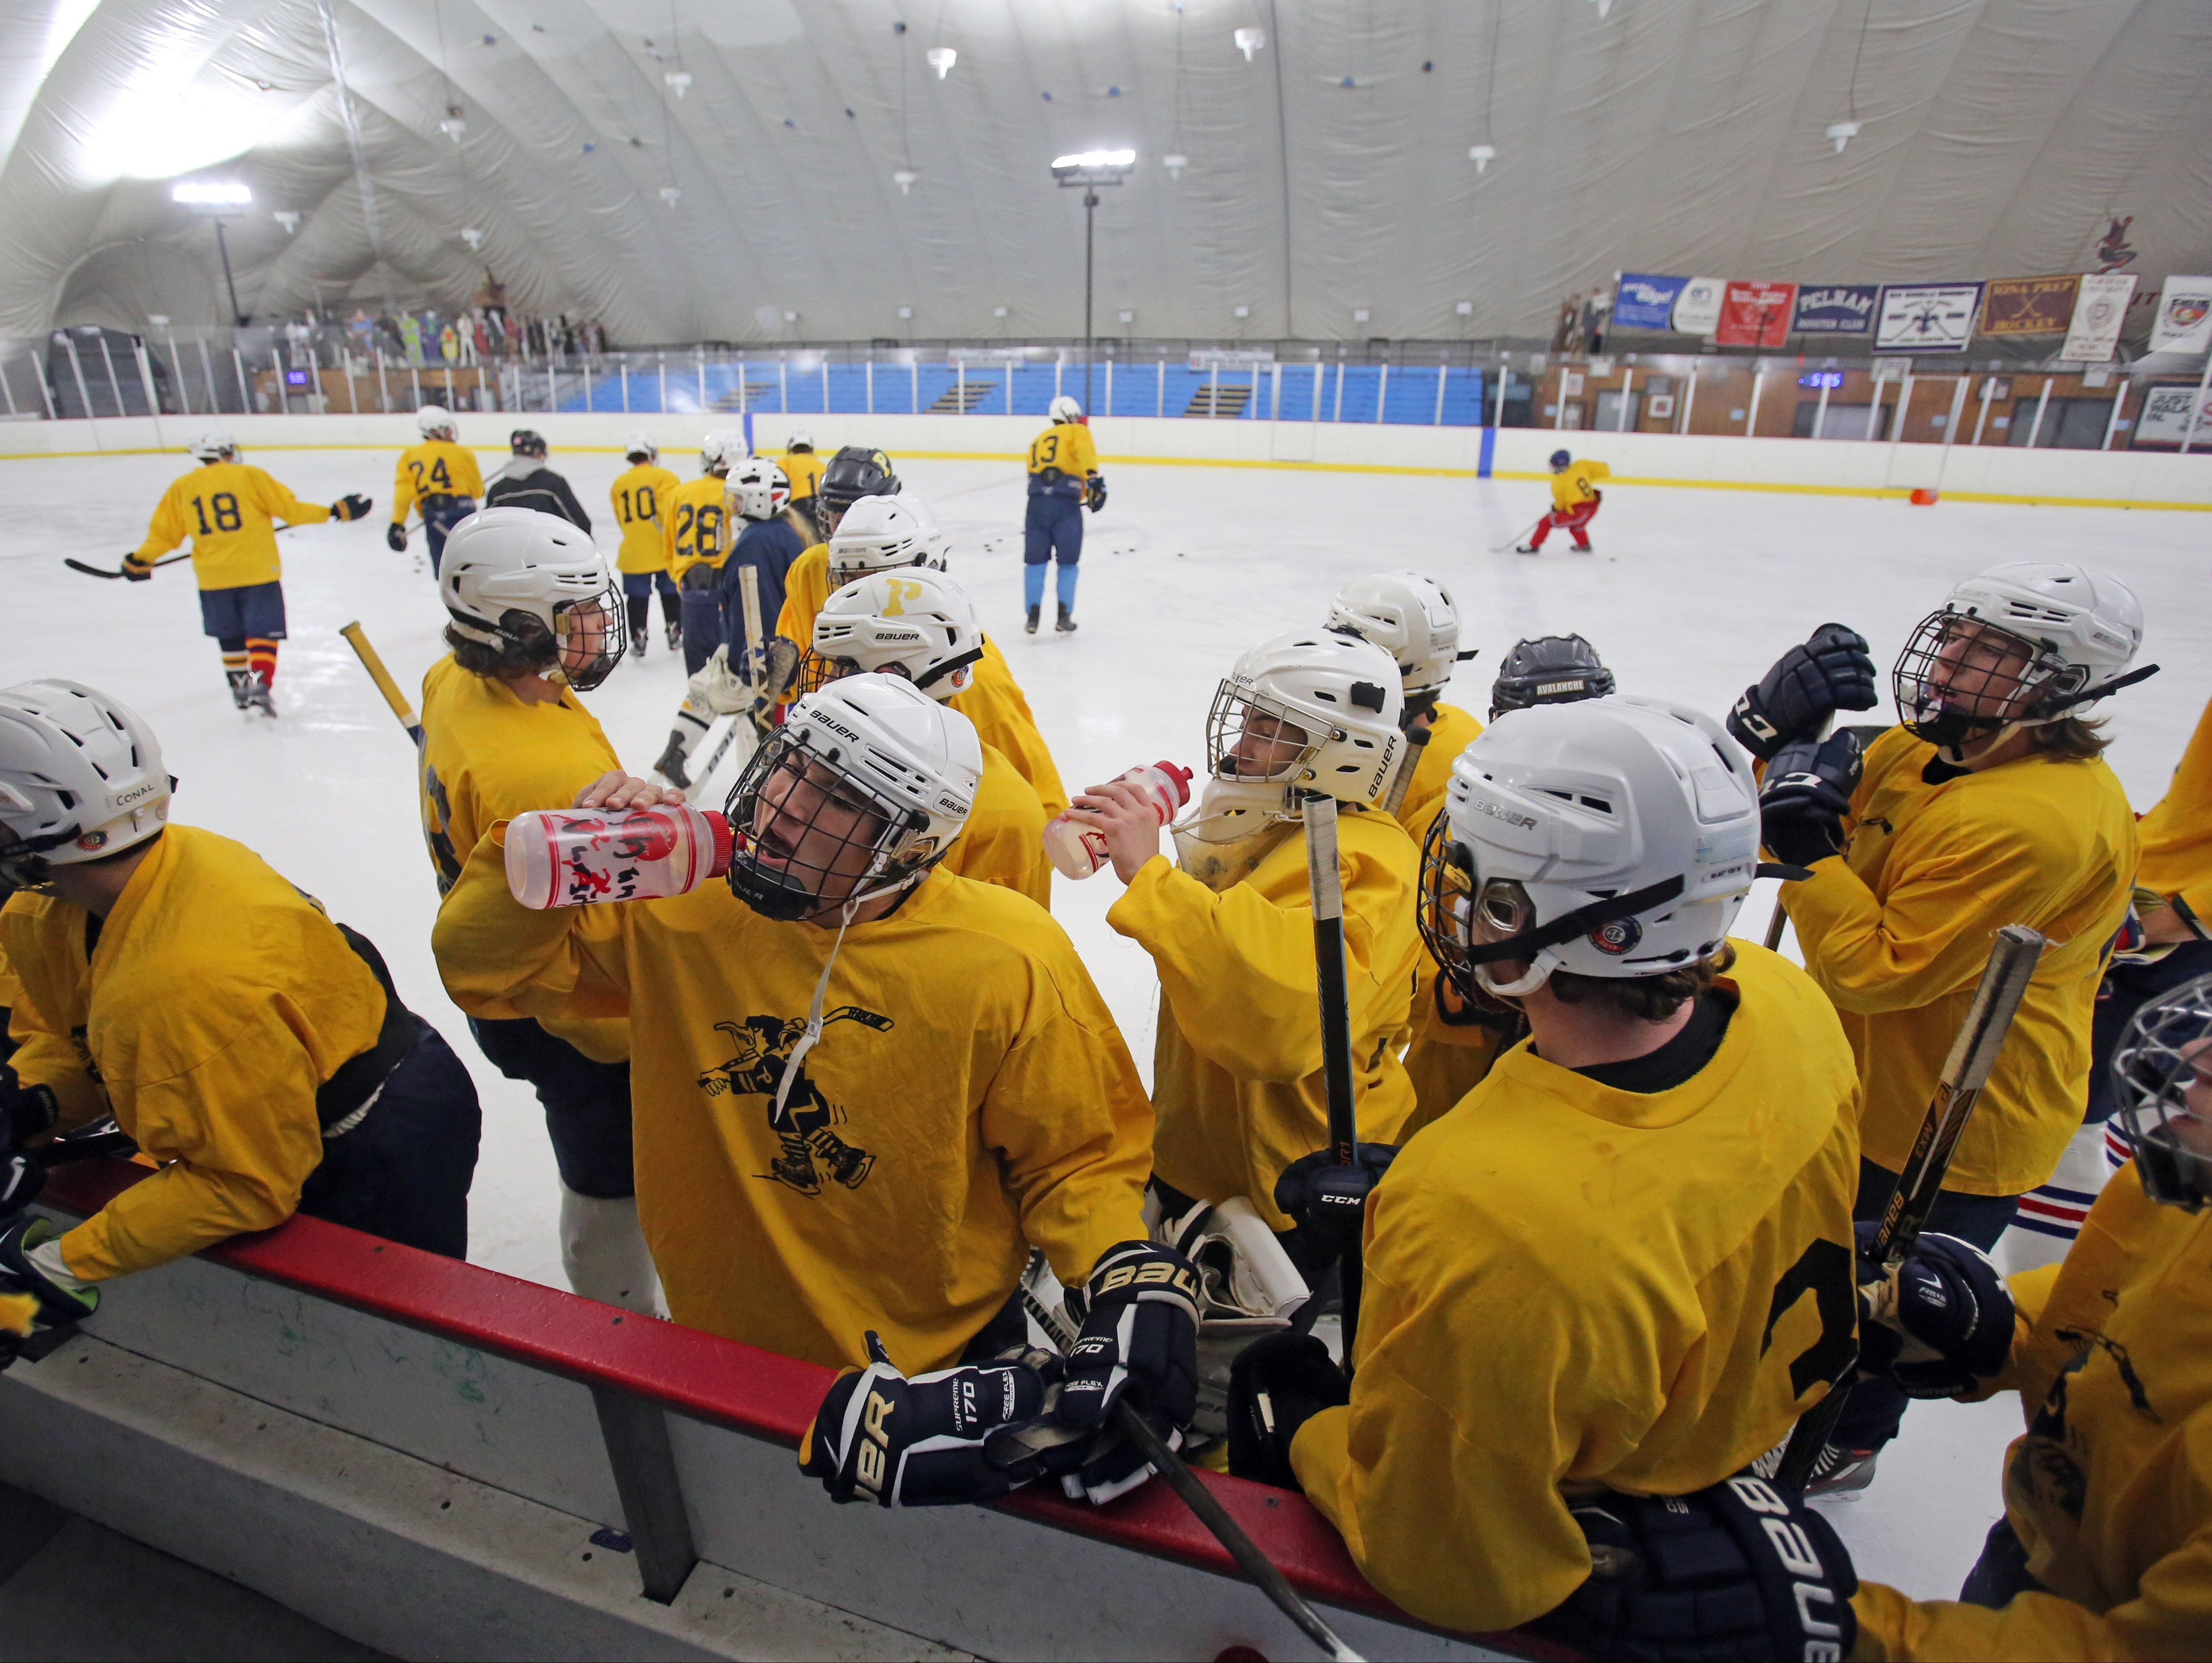 The first day of practice for Pelham hockey team at Ice Hutch in Mount Vernon Nov. 7, 2016.